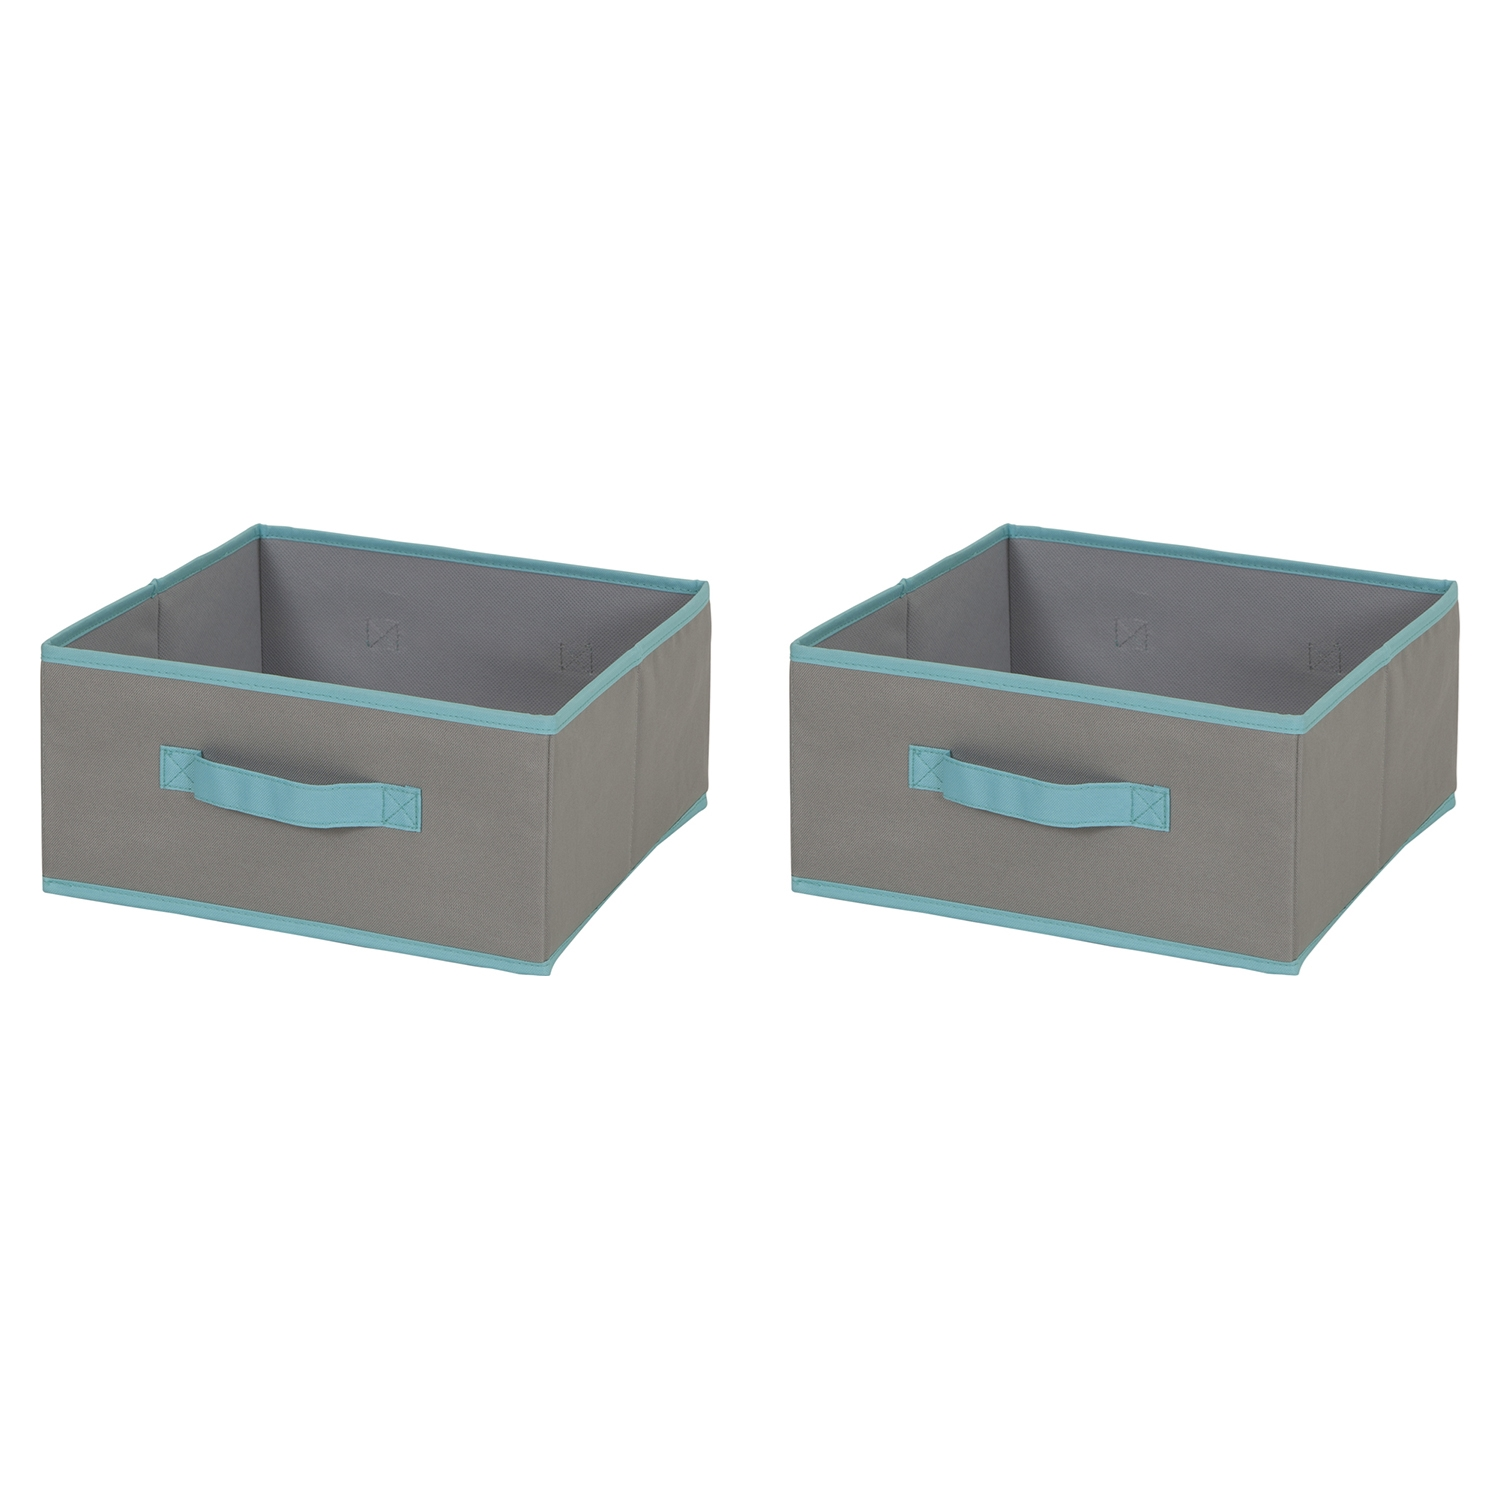 Crea 2 Pack Medium Storage Bin - Gray, Turquoise - SS-8050157